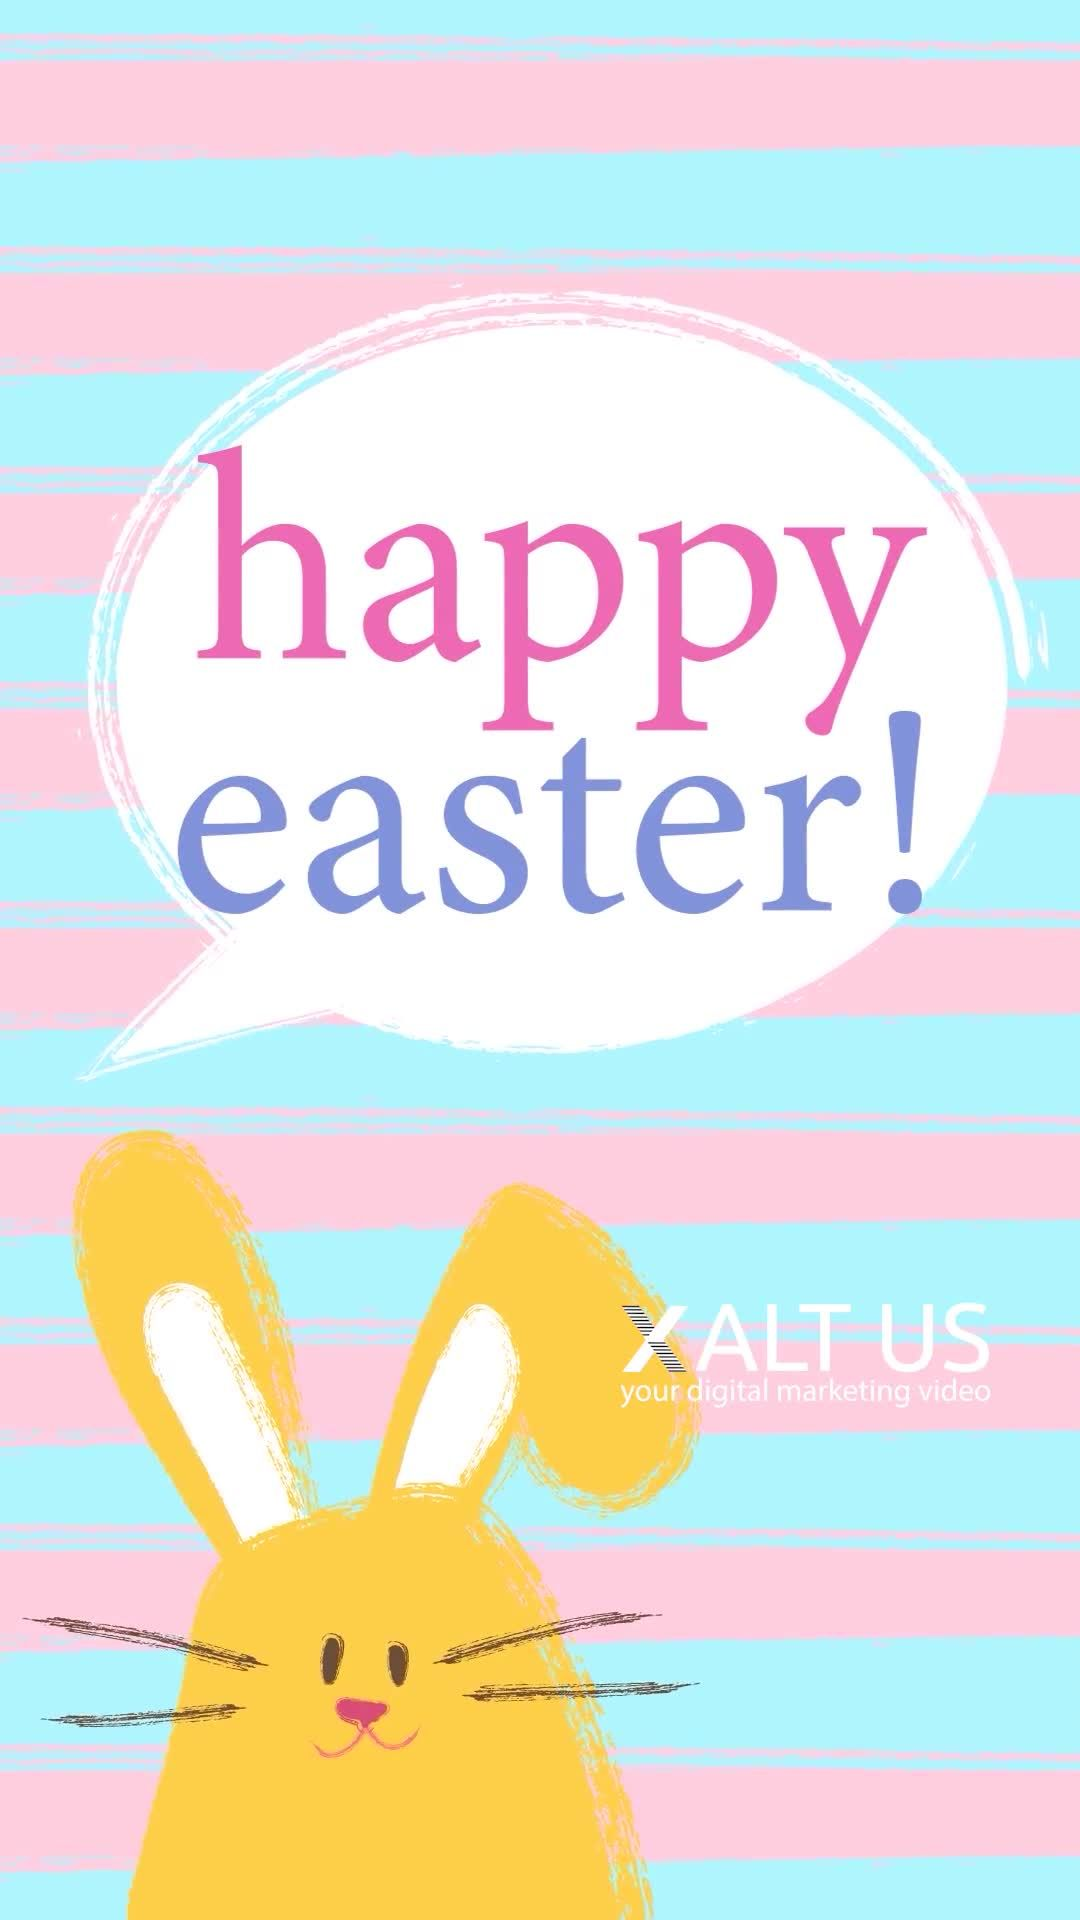 Happy Easter! Have #Fun #Videogreetings by XALTUS #Andrea_Steinbach, #digital_marketing_video, #explainer_video, #film_production, #film_produktion, #imagevideo, #image_video, #marketing_video, #marketing_video_production, #marketingvideo, #online_marketing, #video_production, #videoproduction, #video_maker, #Videoproduktion, #XALTUS, #video_produktion, #Happy_Easter, #Healthy_easter, #Eastergreetings, #Eastervideo, #Easter_Video, #Easter_Greetings